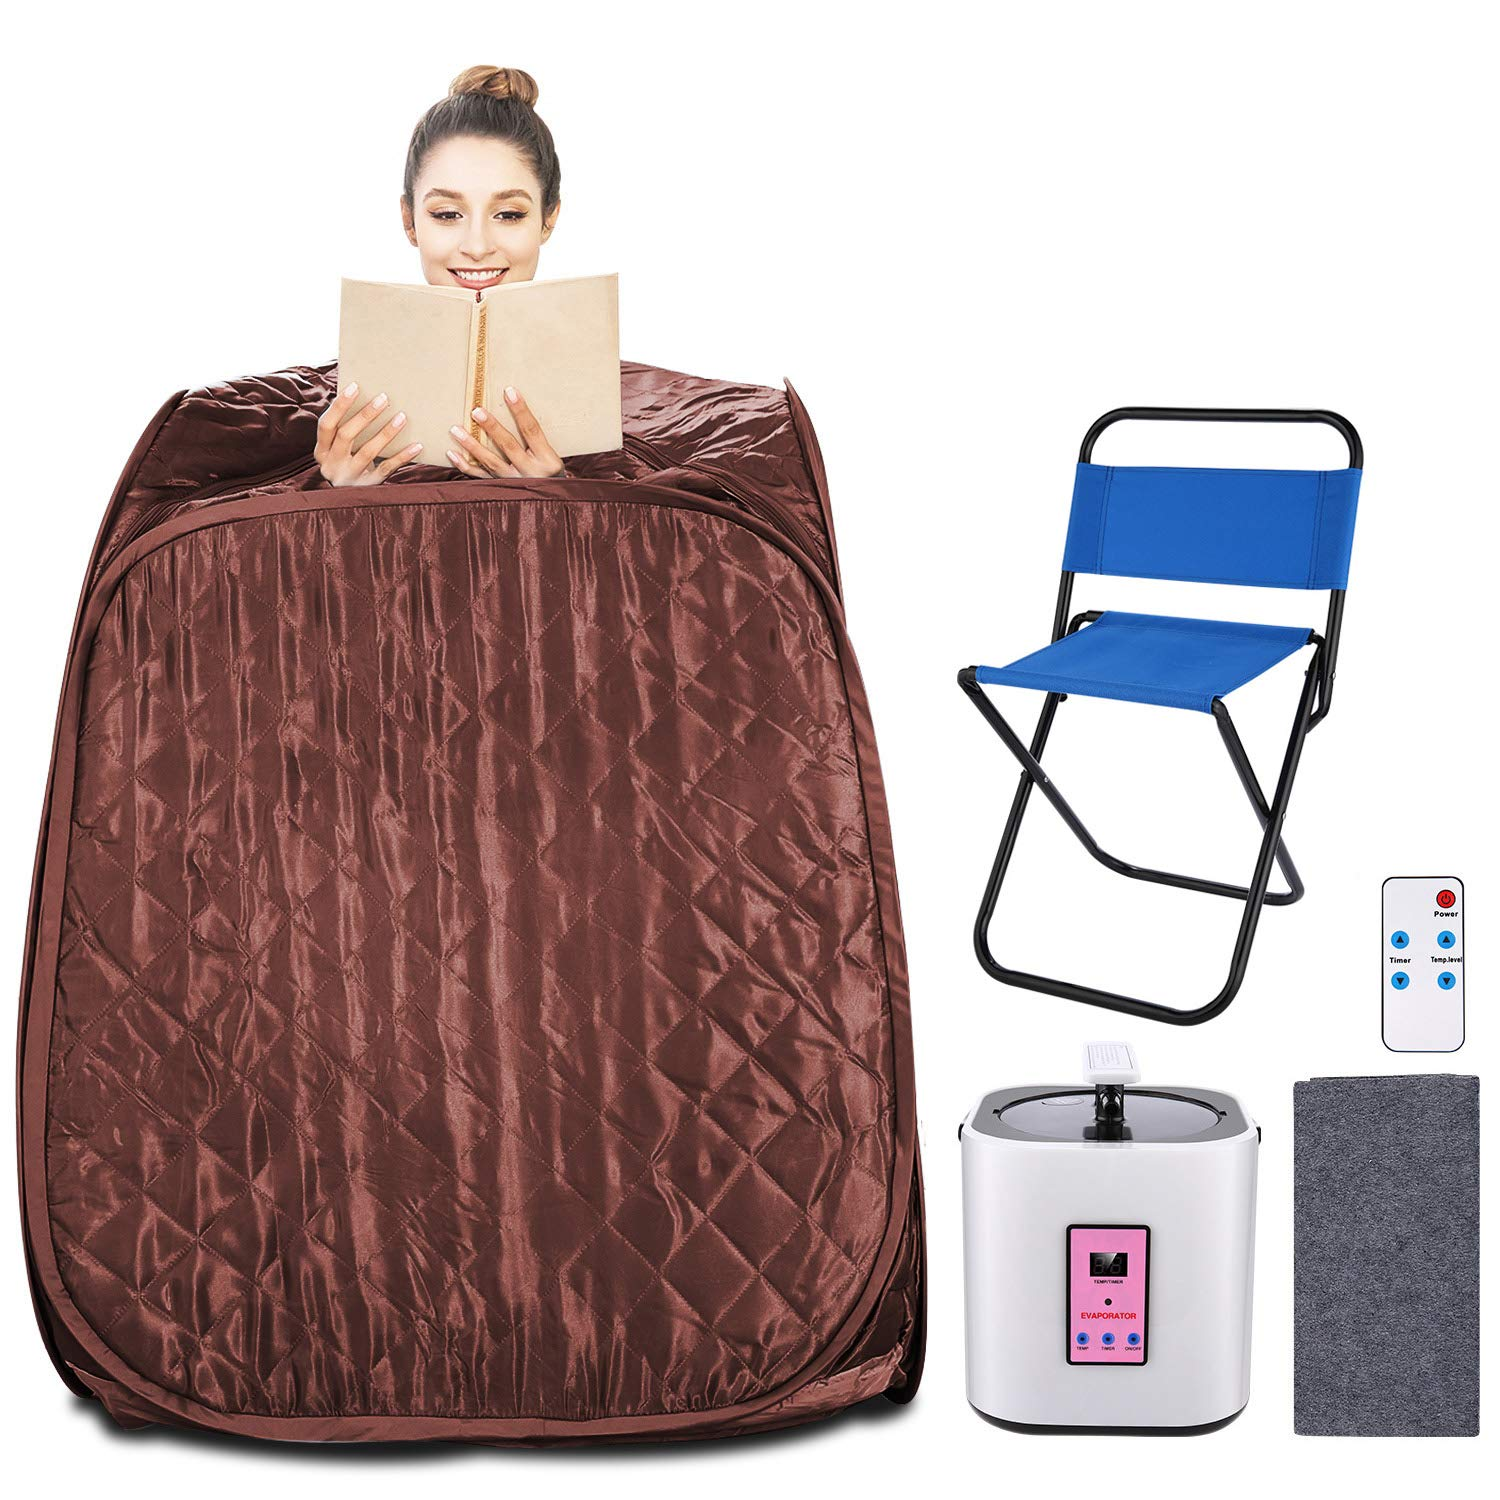 Aceshin Portable Steam Sauna Home Spa, 2L Personal Therapeutic Sauna Weight Loss Slimming Detox with Foldable Chair, Remote Control, Timer Coffee